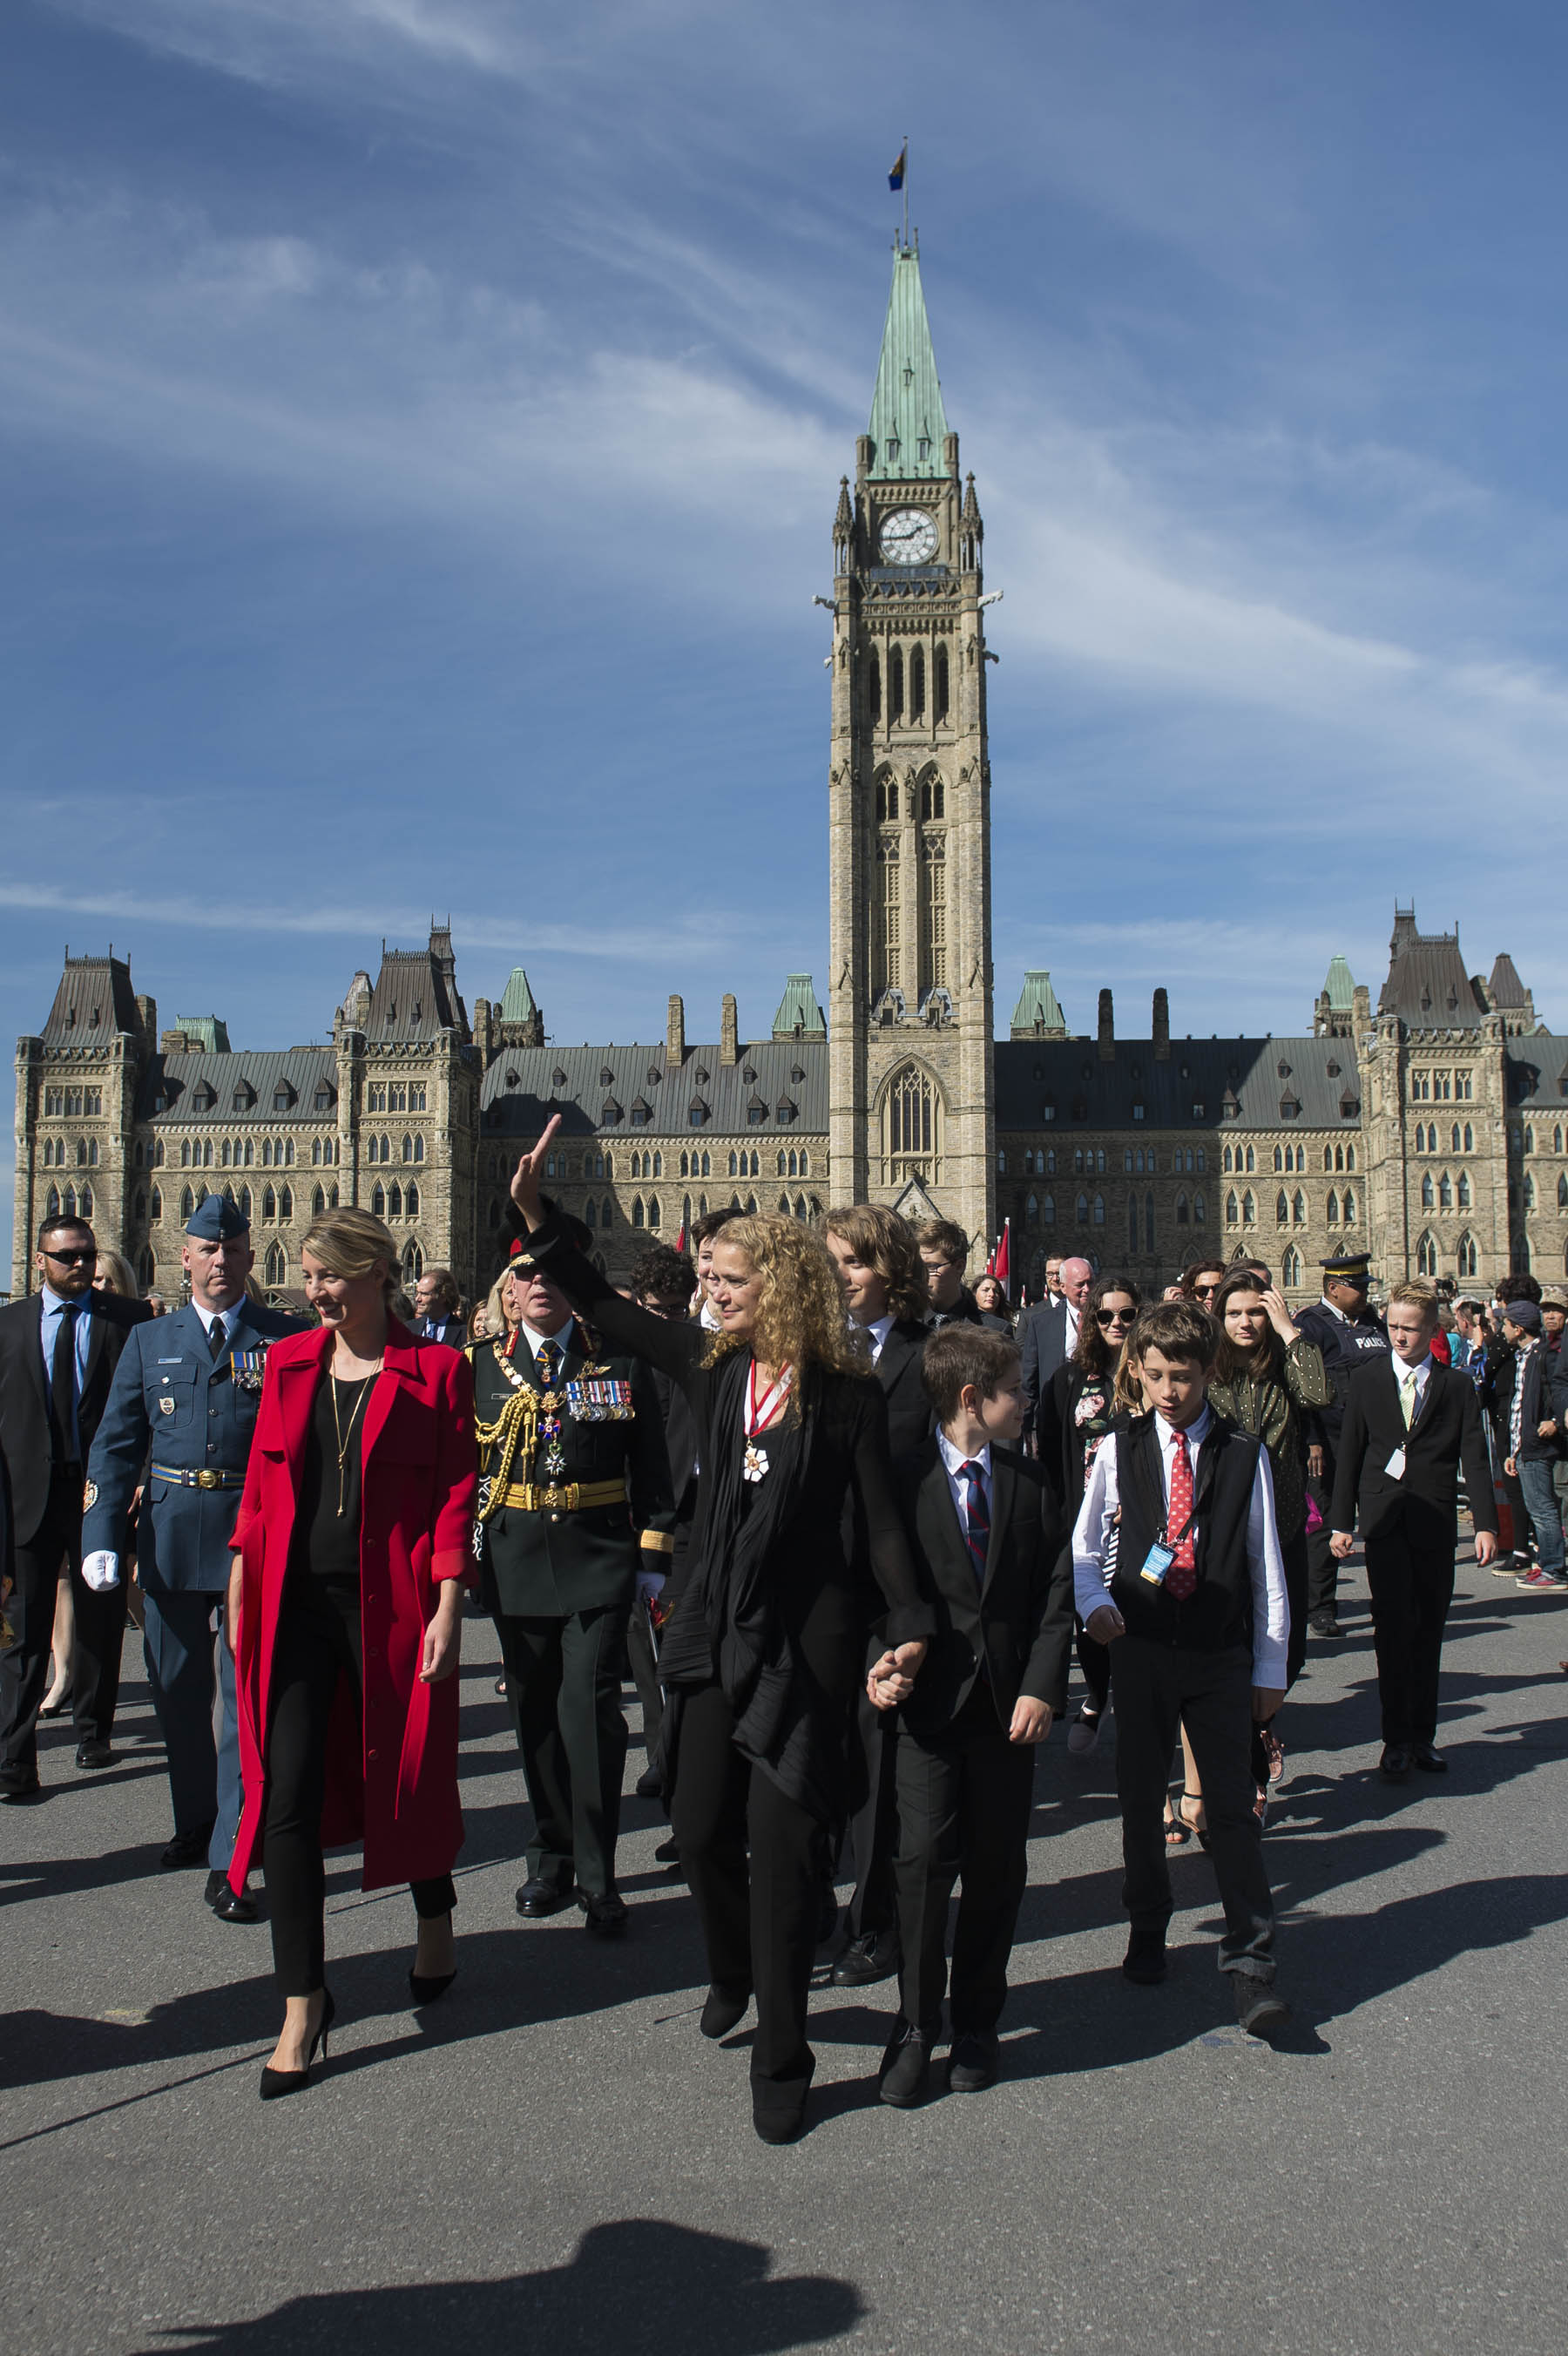 Her Excellency then walked from Parliament Hill to the National War Memorial.